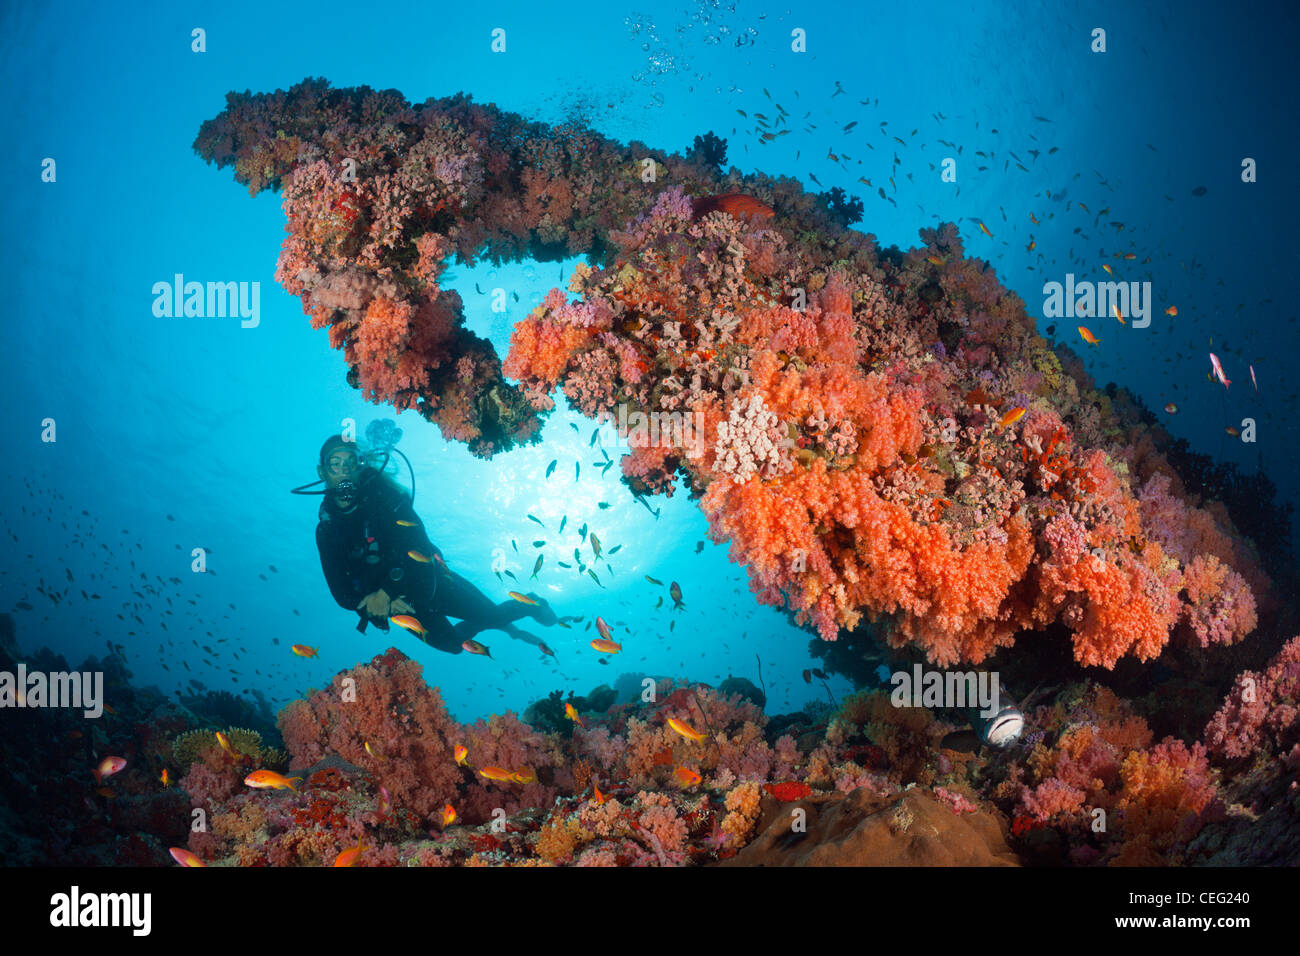 Scuba Diving on Coral Reef, North Male Atoll, Indian Ocean, Maldives - Stock Image